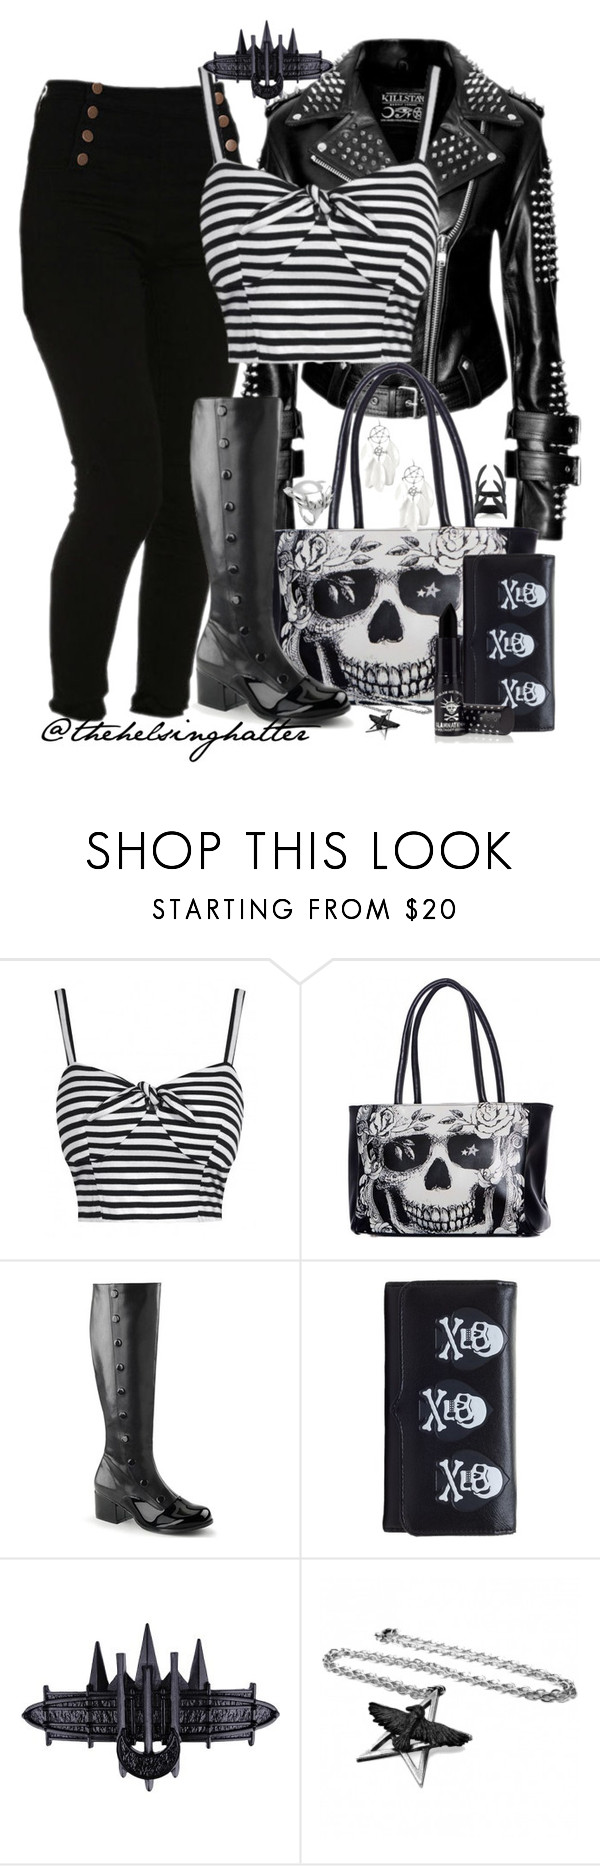 """""""The Only Thing That's Black and White is My Outfit"""" by thehelsinghatter ❤ liked on Polyvore featuring Funtasma and OBEY Clothing"""